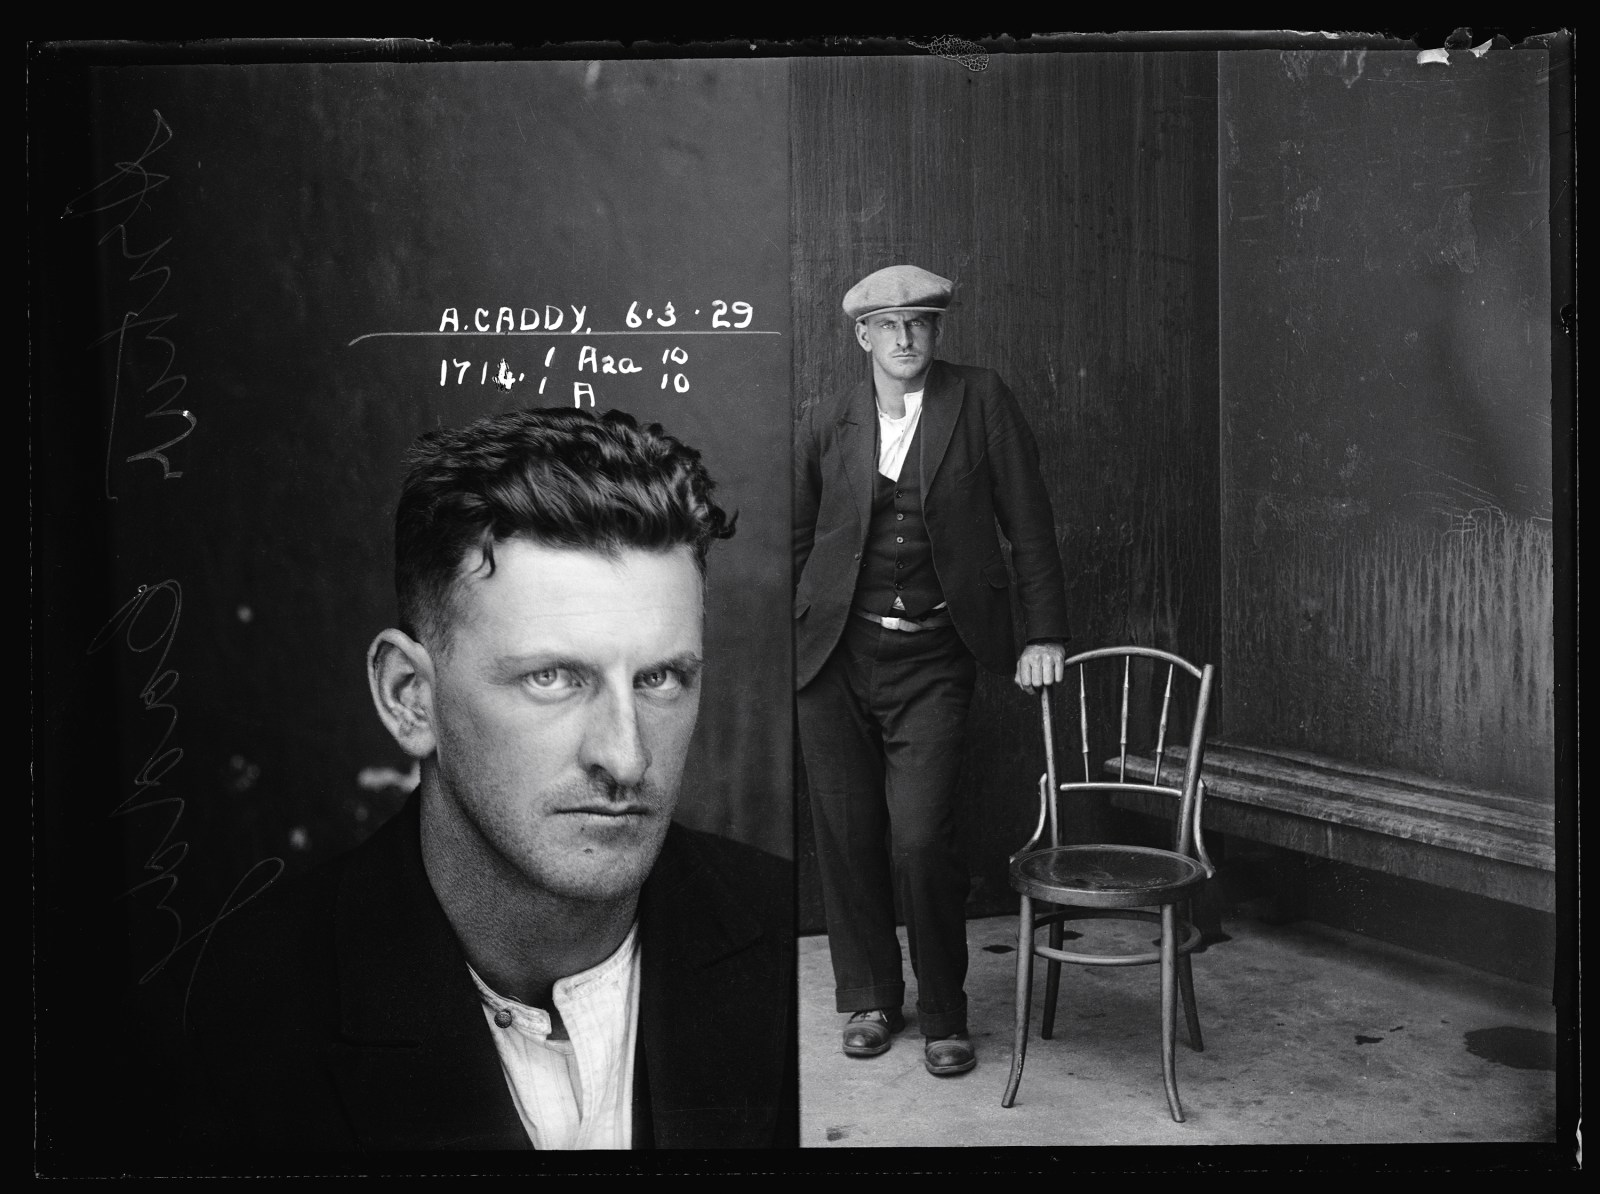 Image Credit:Arthur Caddy, 6 March 1929, Suspect, offence unknown, Special Photograph number 1714, NSW Police Forensic Photography Archive, Sydney Living Museums